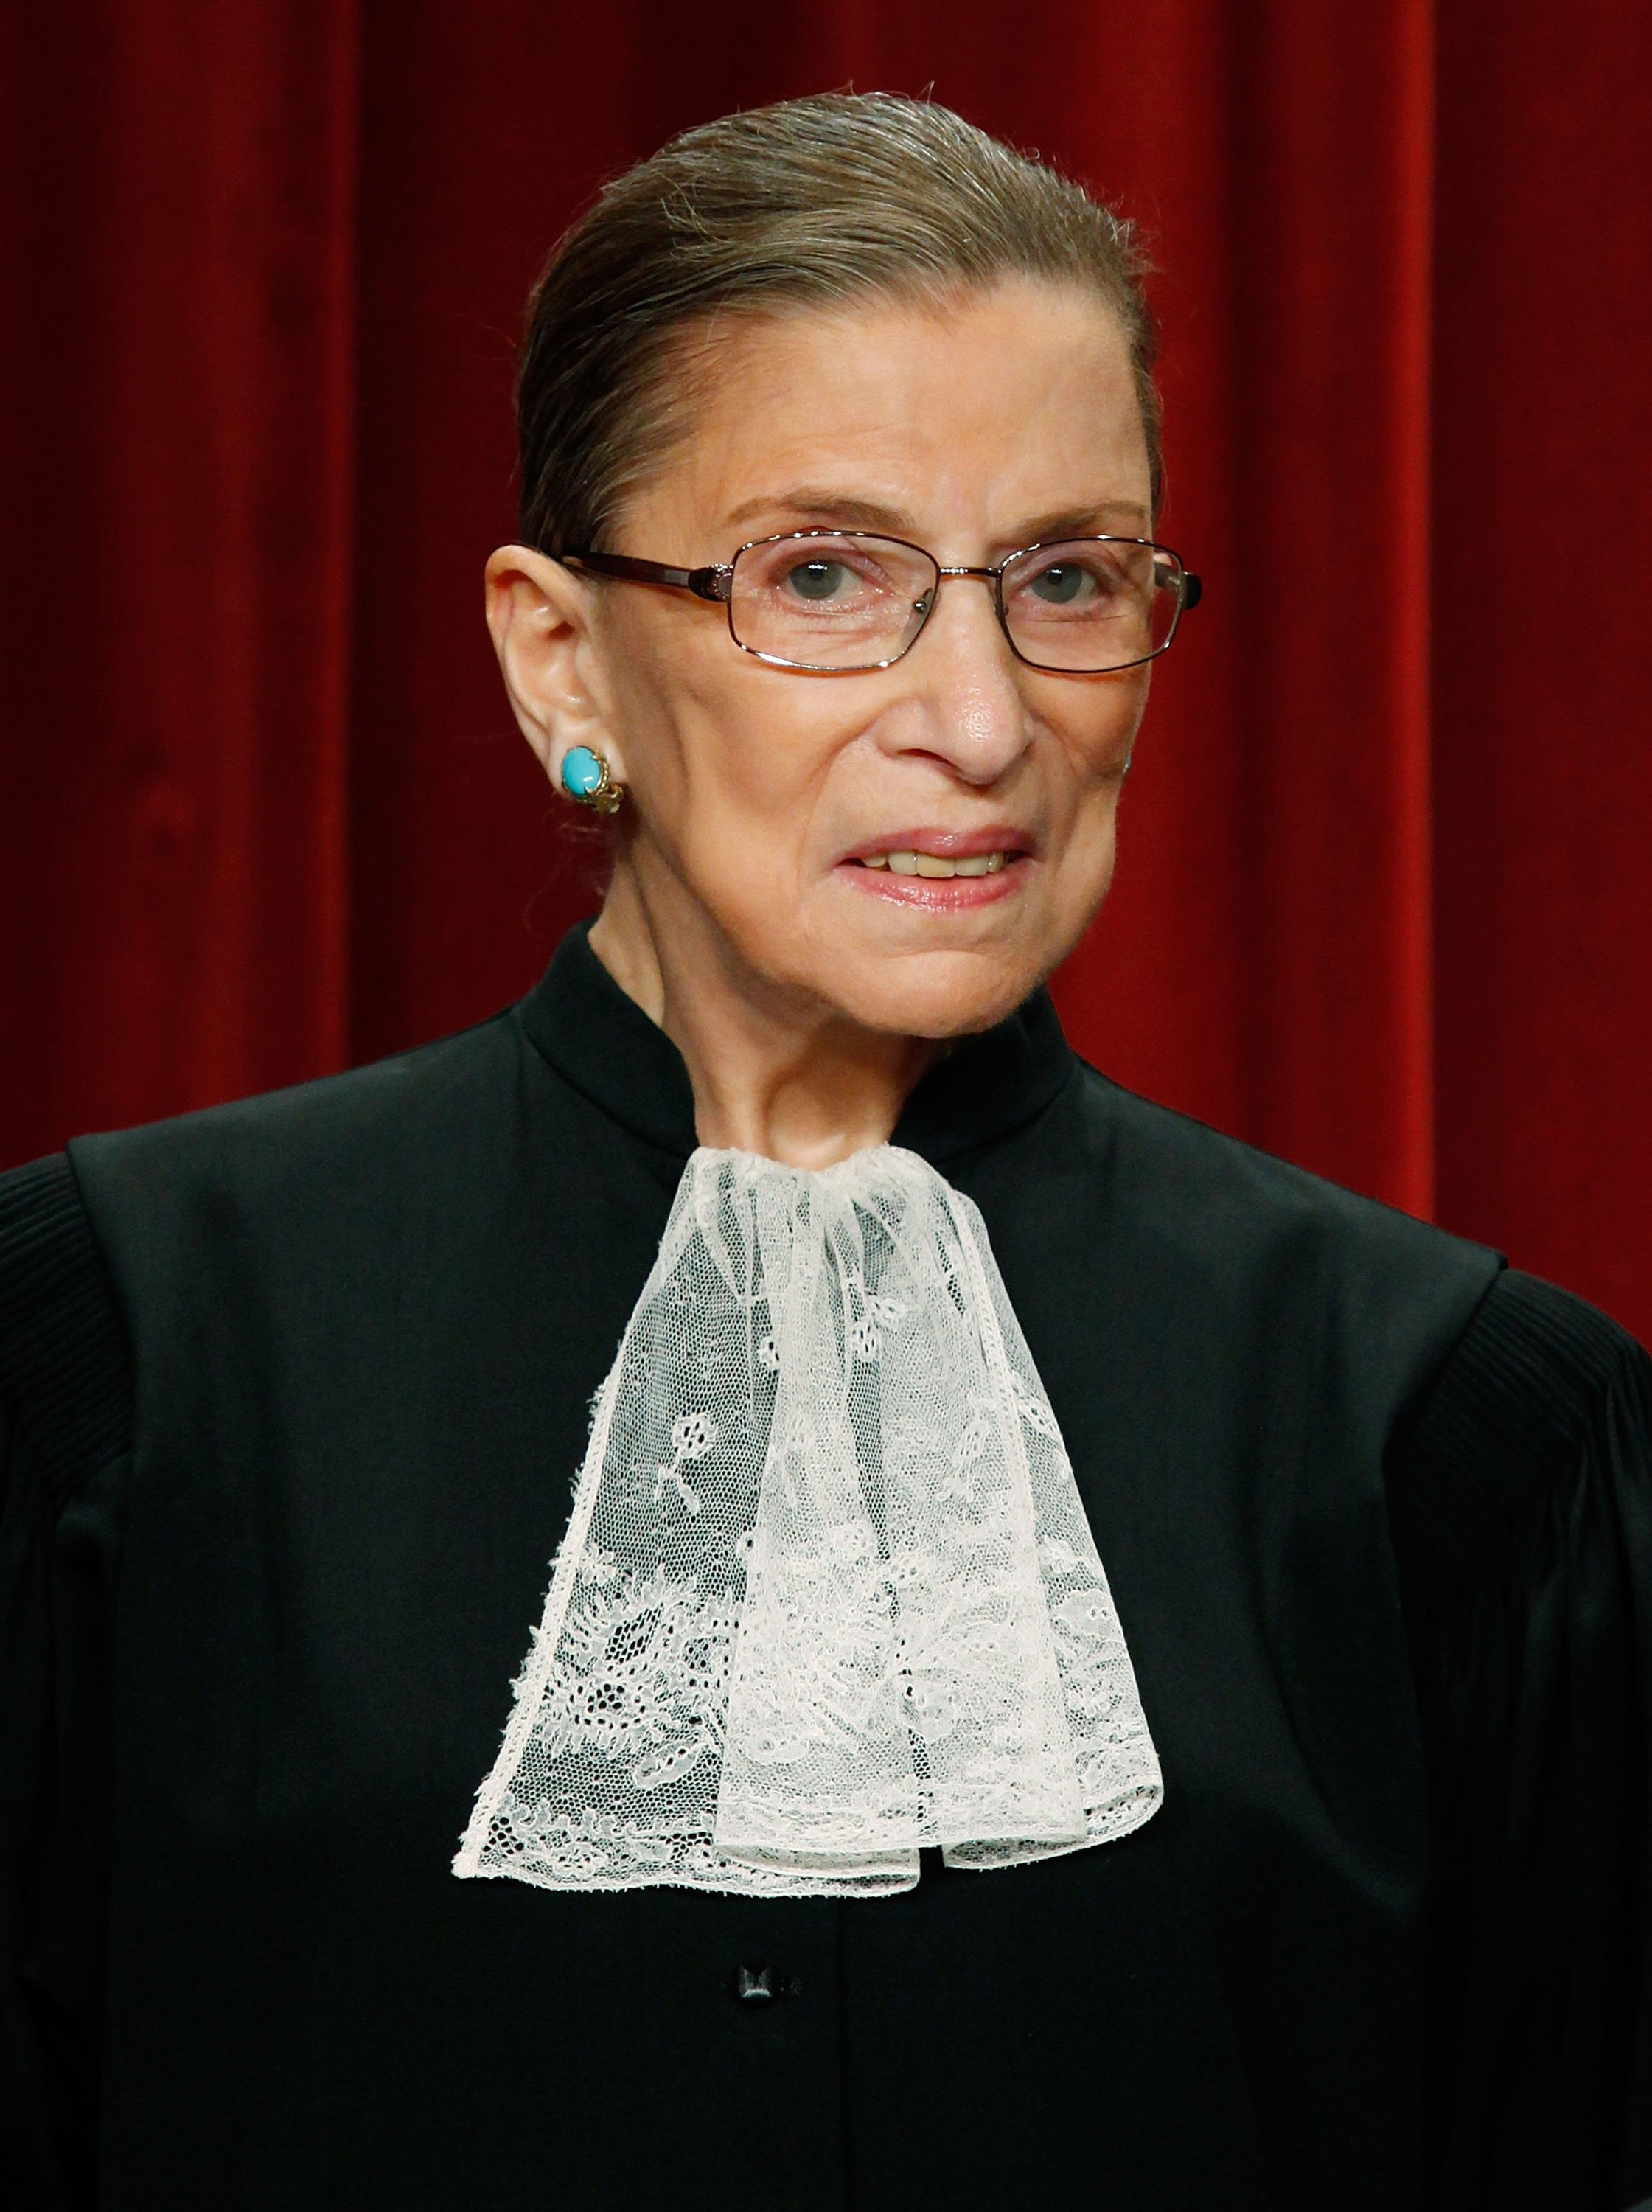 Justice Ruth Bader Ginsburg at the Supreme Court building on September 29, 2009 in Washington, DC | Photo: Getty Images